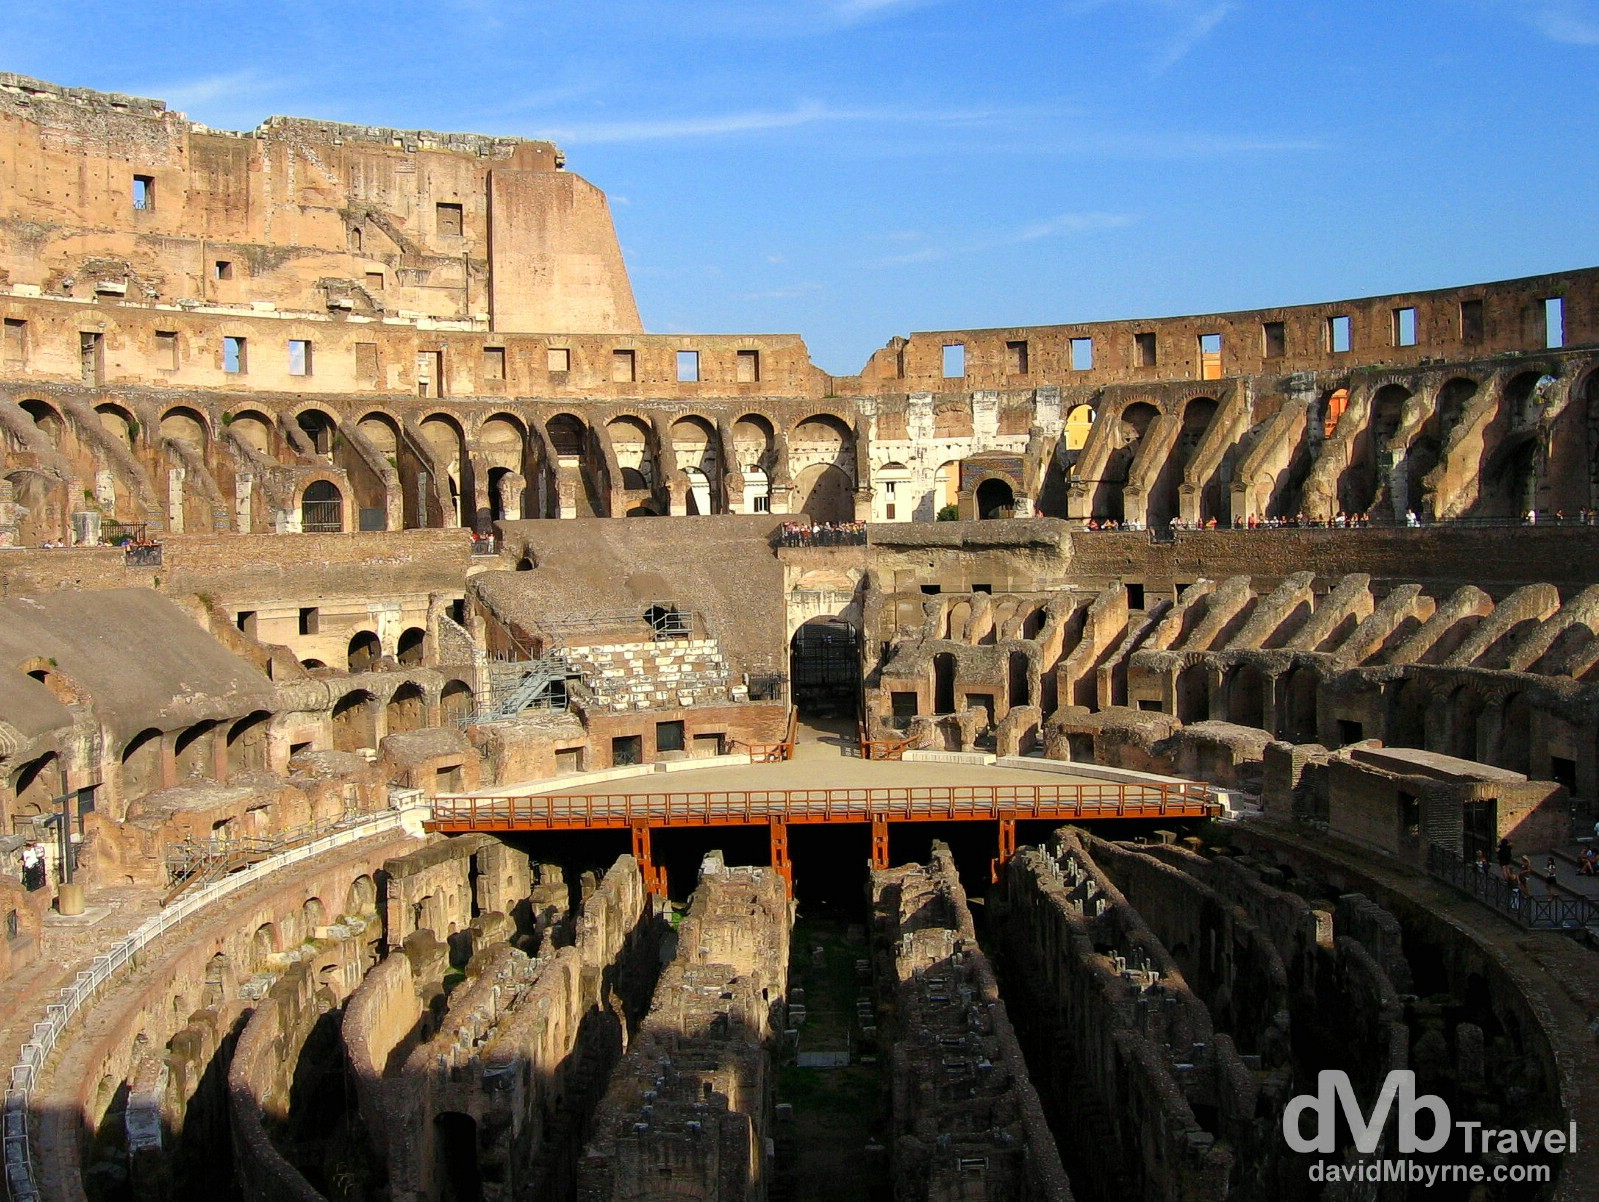 The interior of the Colosseum in Rome, Italy. September 2nd, 2007.